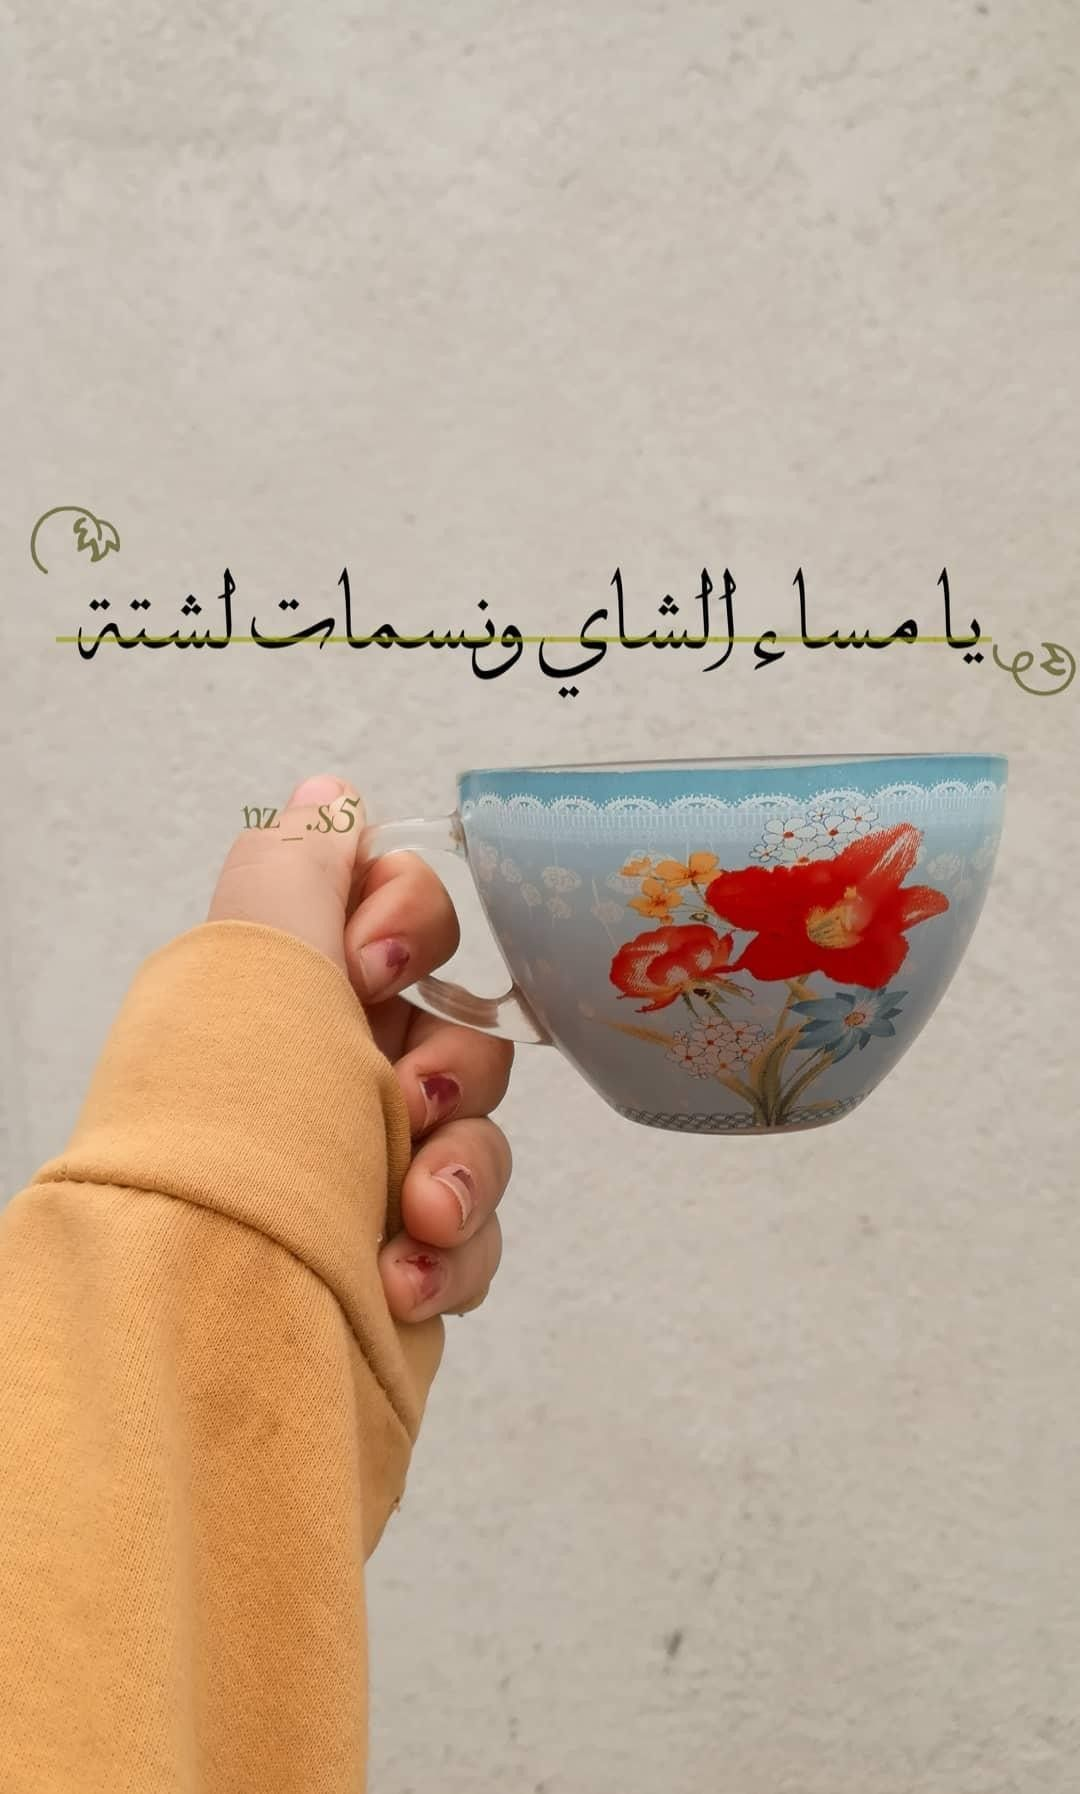 مساء الشاي Girly Images Instagram Inspiration Posts Instagram Inspiration